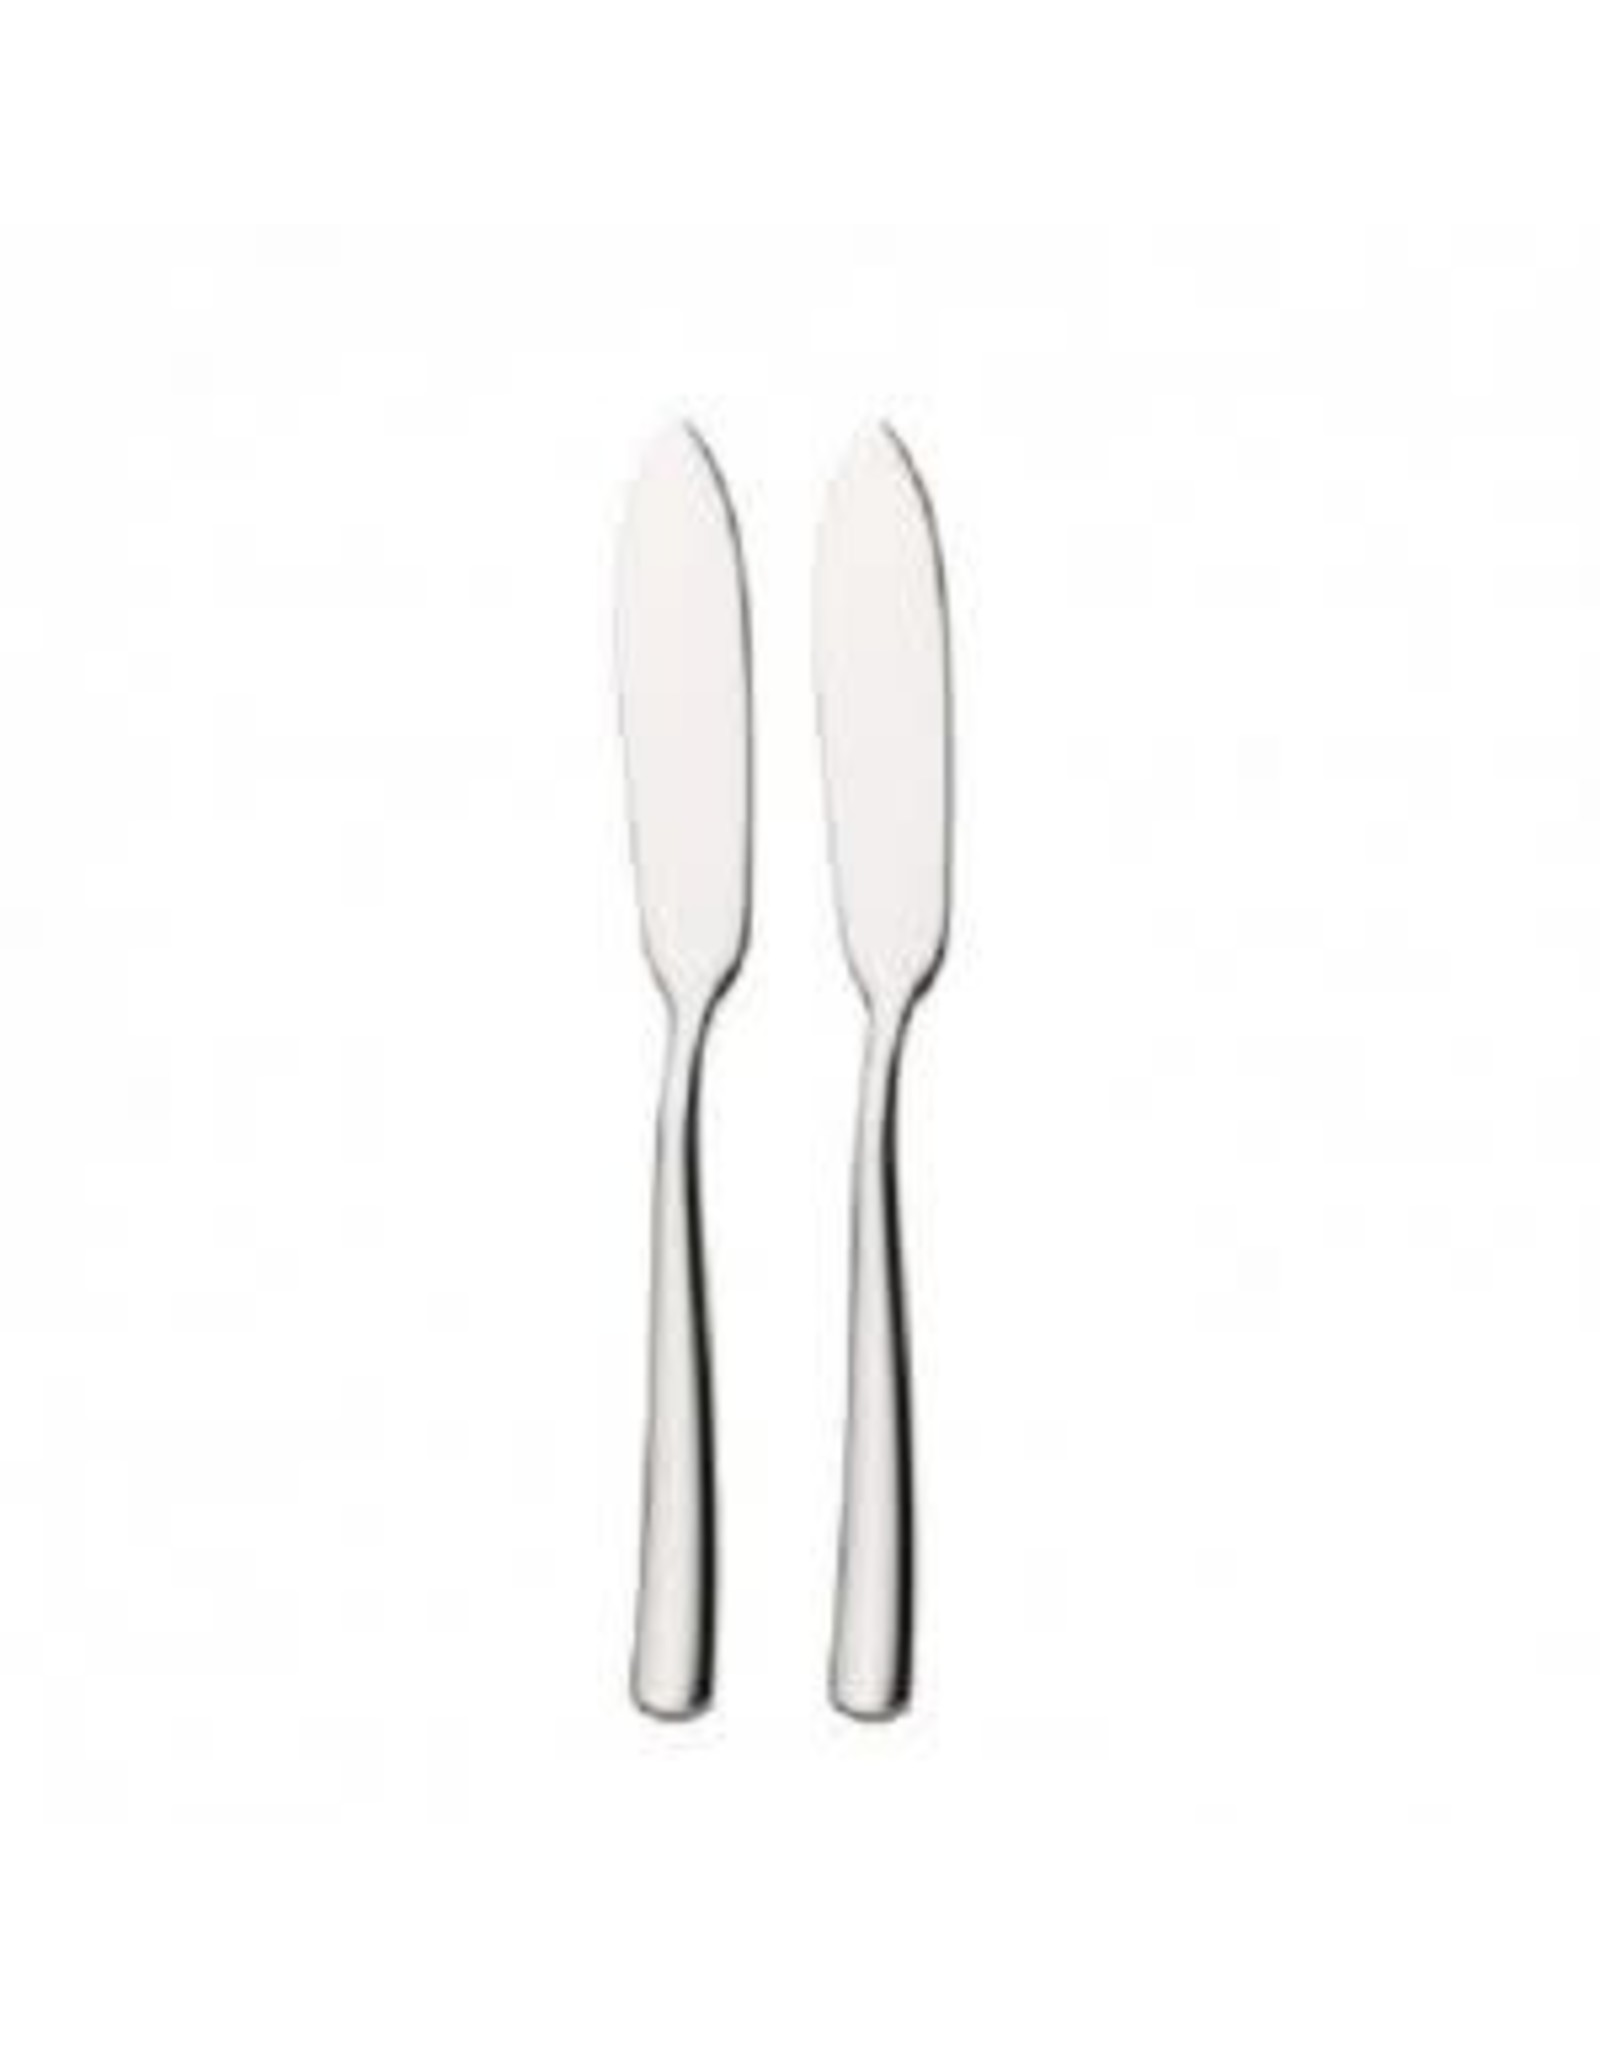 WMF WMF Bistro Butter Spreaders X2